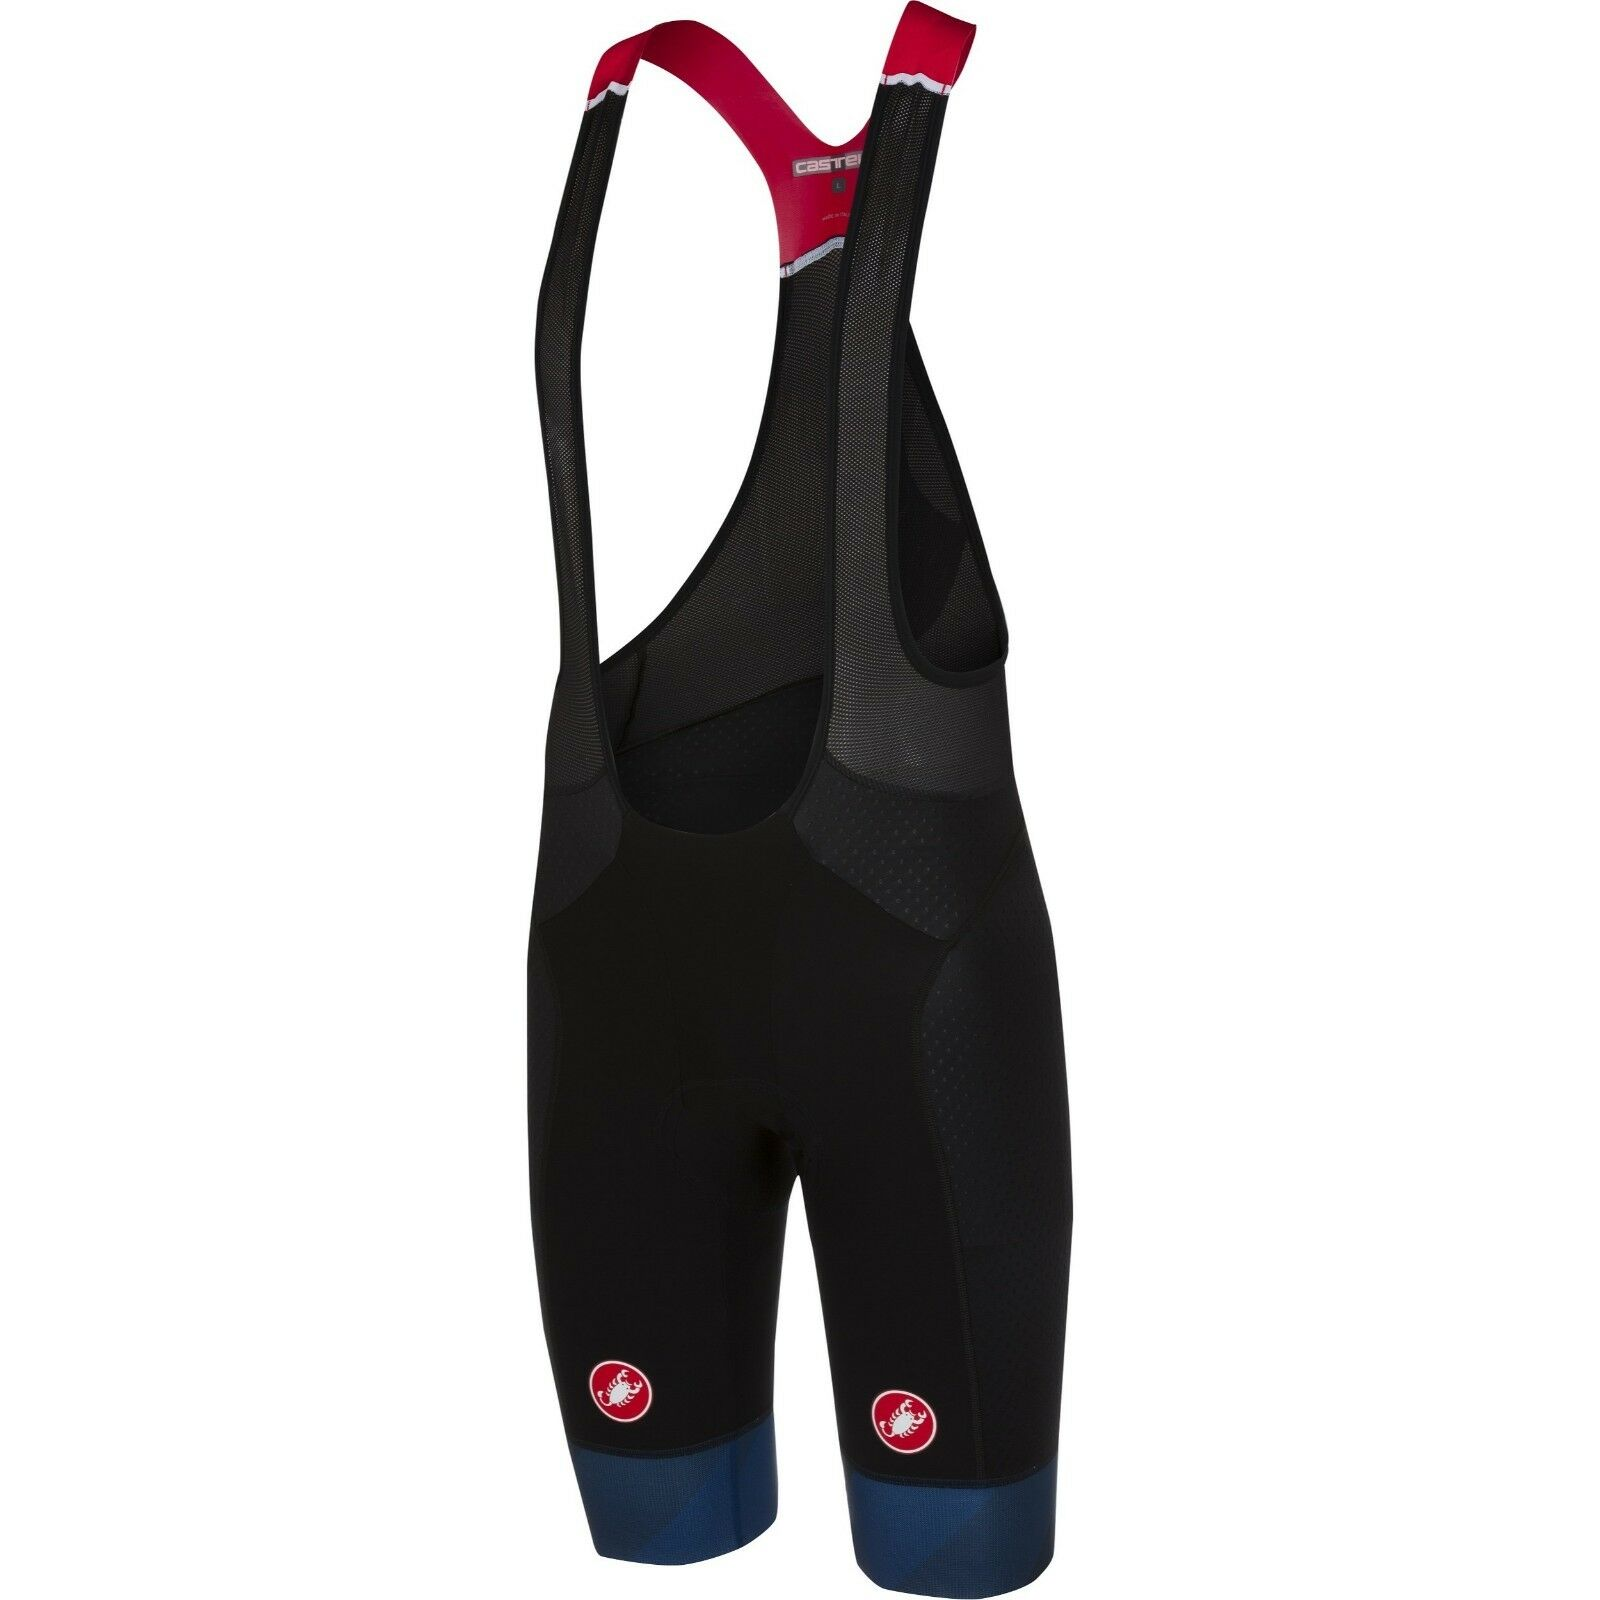 Castelli Men's Free Aero Race Kit Bib Short - 2018